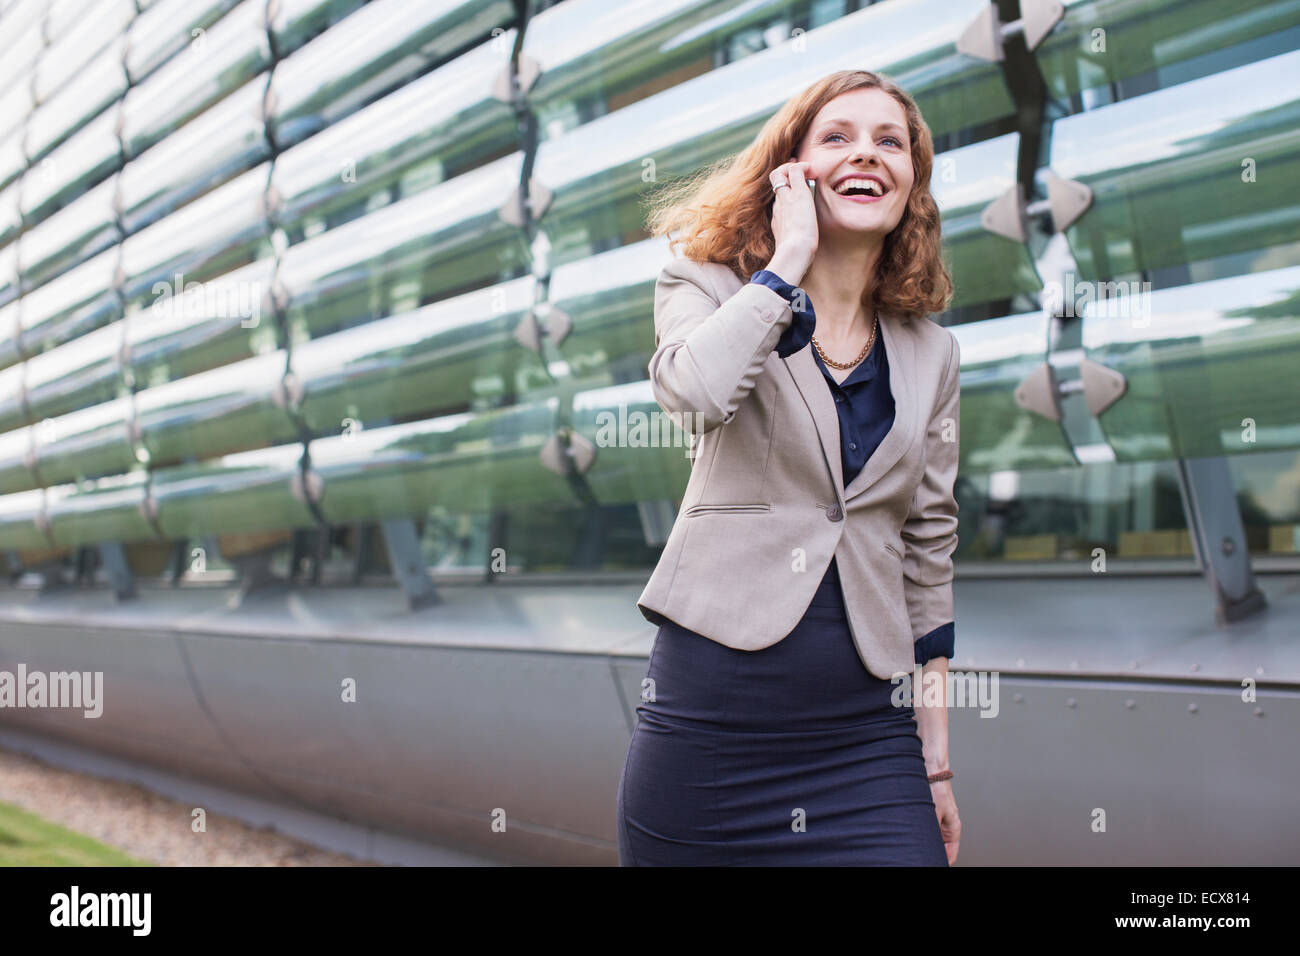 Businesswoman talking on cell phone outdoors Stock Photo